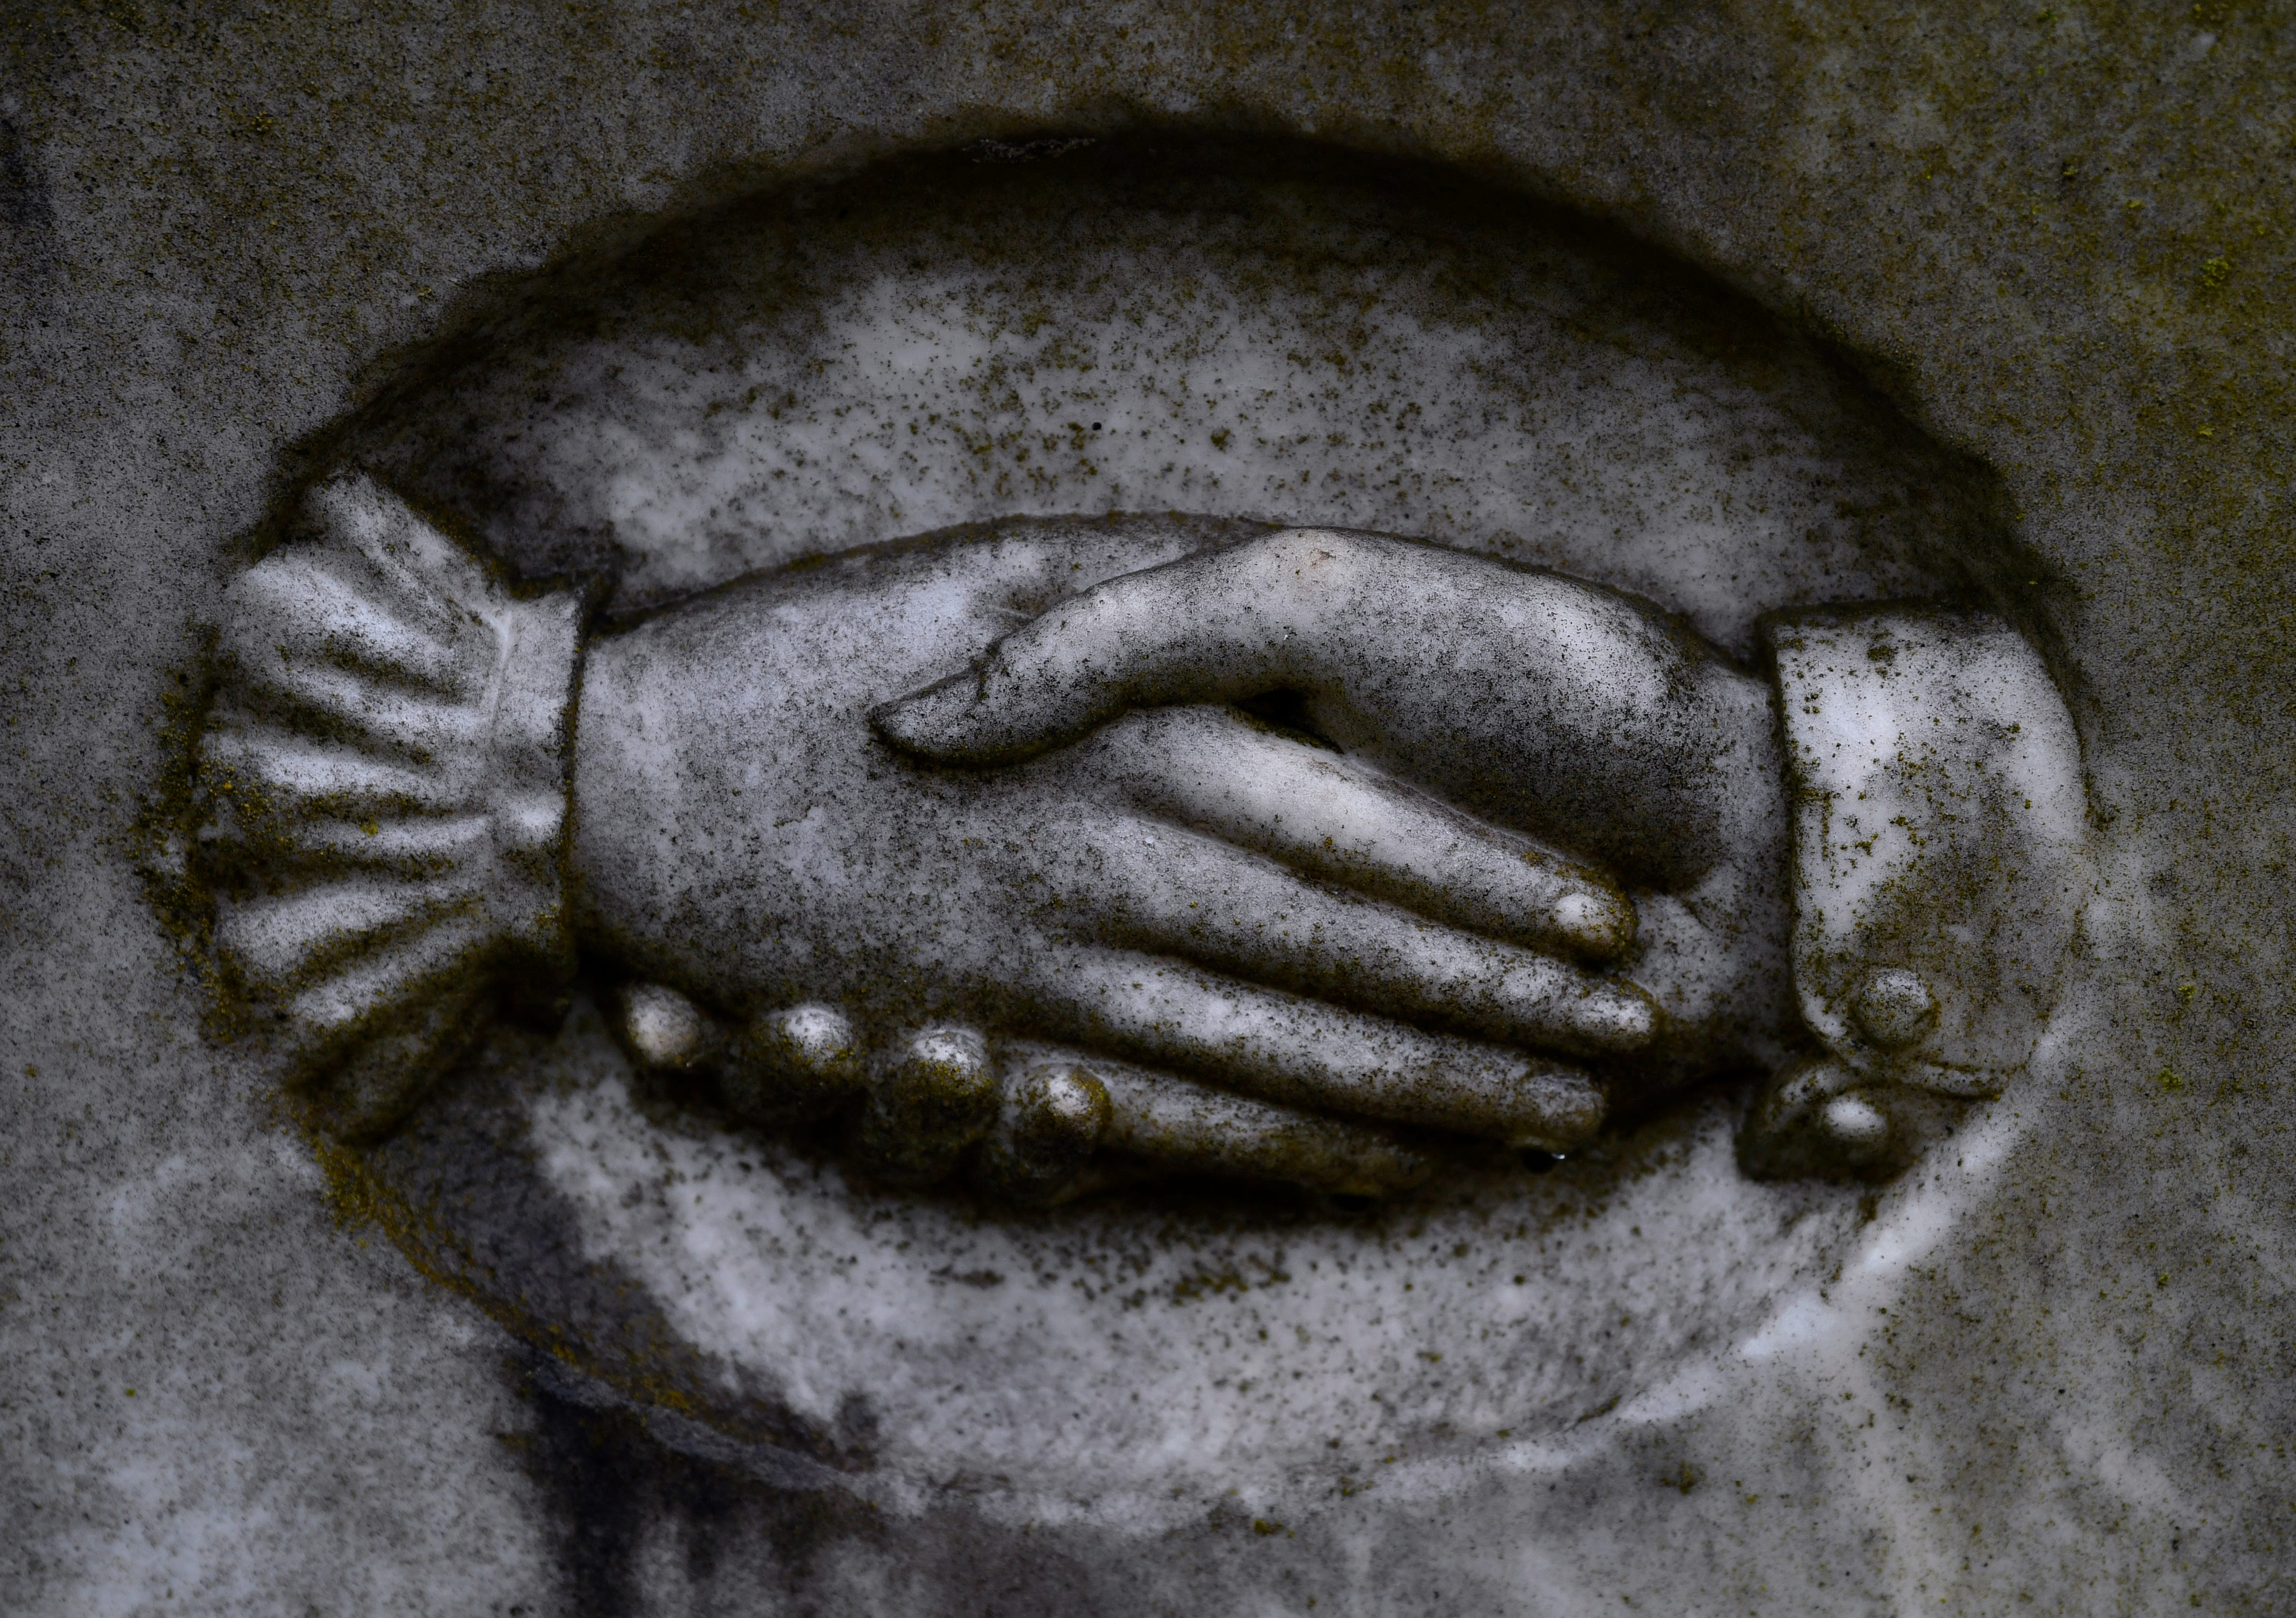 A detail of clasped hands found on the grave marker of Axel Bernhard Eriksson, 19, who died May 24, 1892. Greenleaf Cemetery in Brownwood turned 150 years old this year.